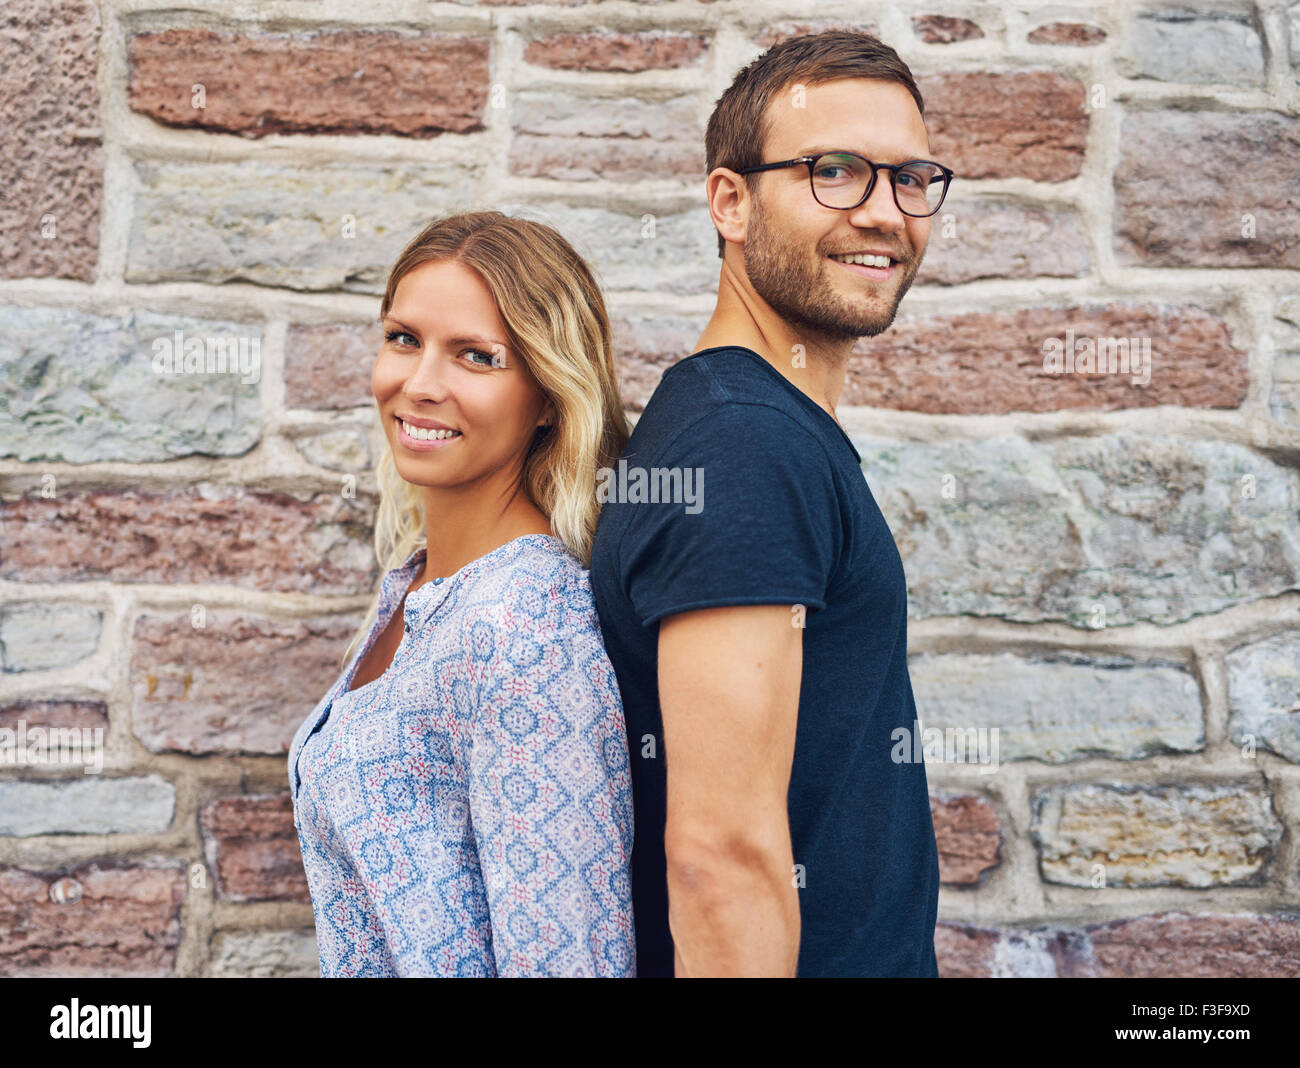 Happy Couple Standing Back to Back and Smiling at the Camera Against Brick Wall Background - Stock Image